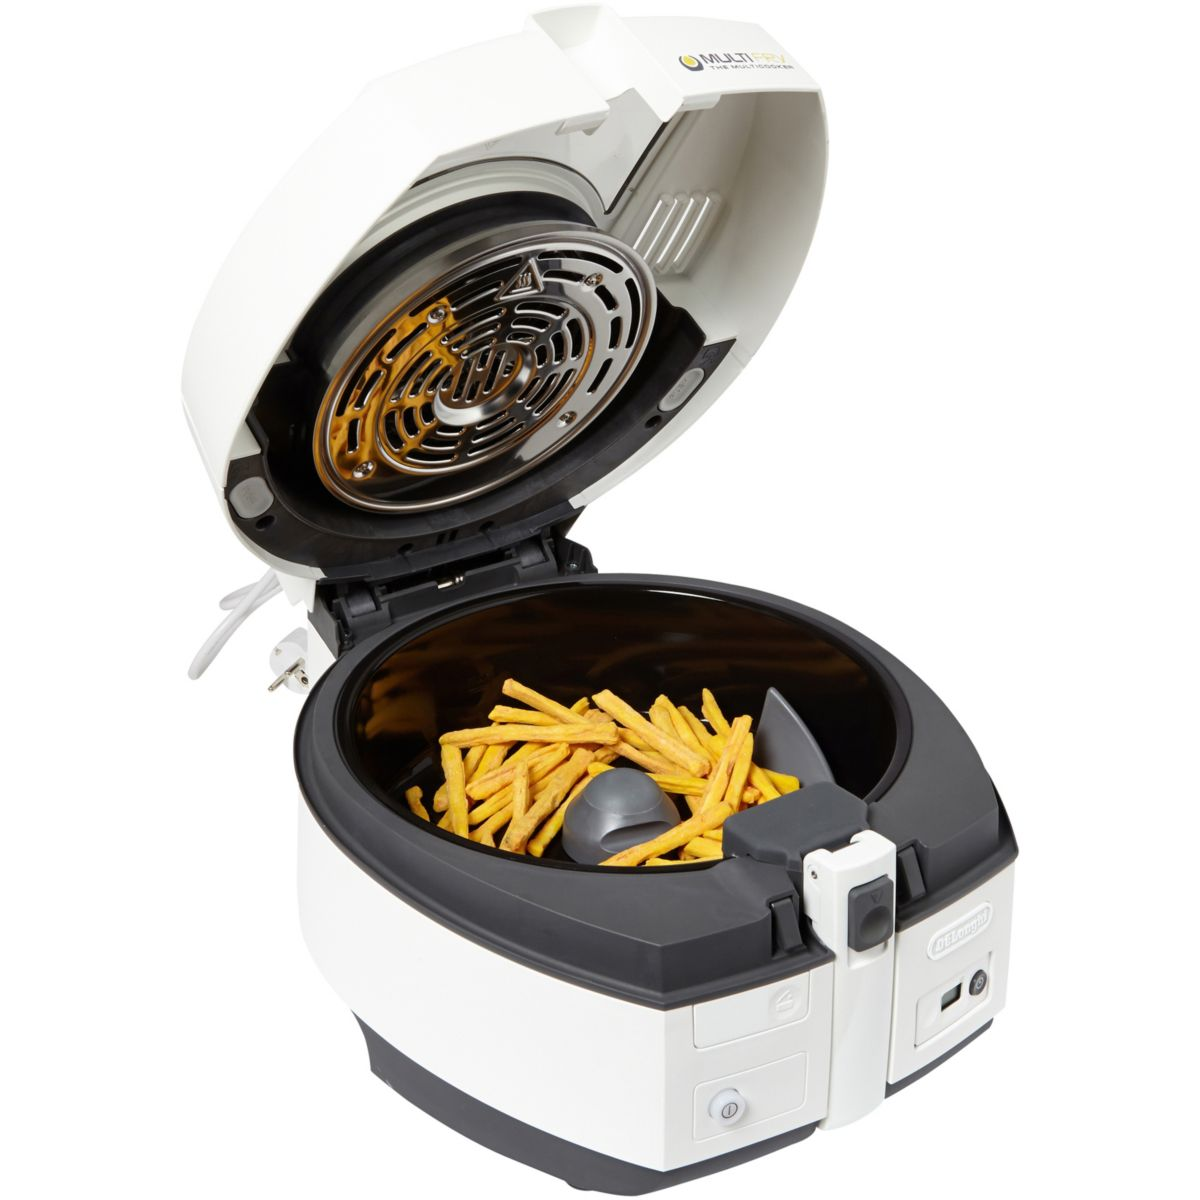 Friteuse delonghi fh1130/1 multifry young - 7% de remise : code pam7